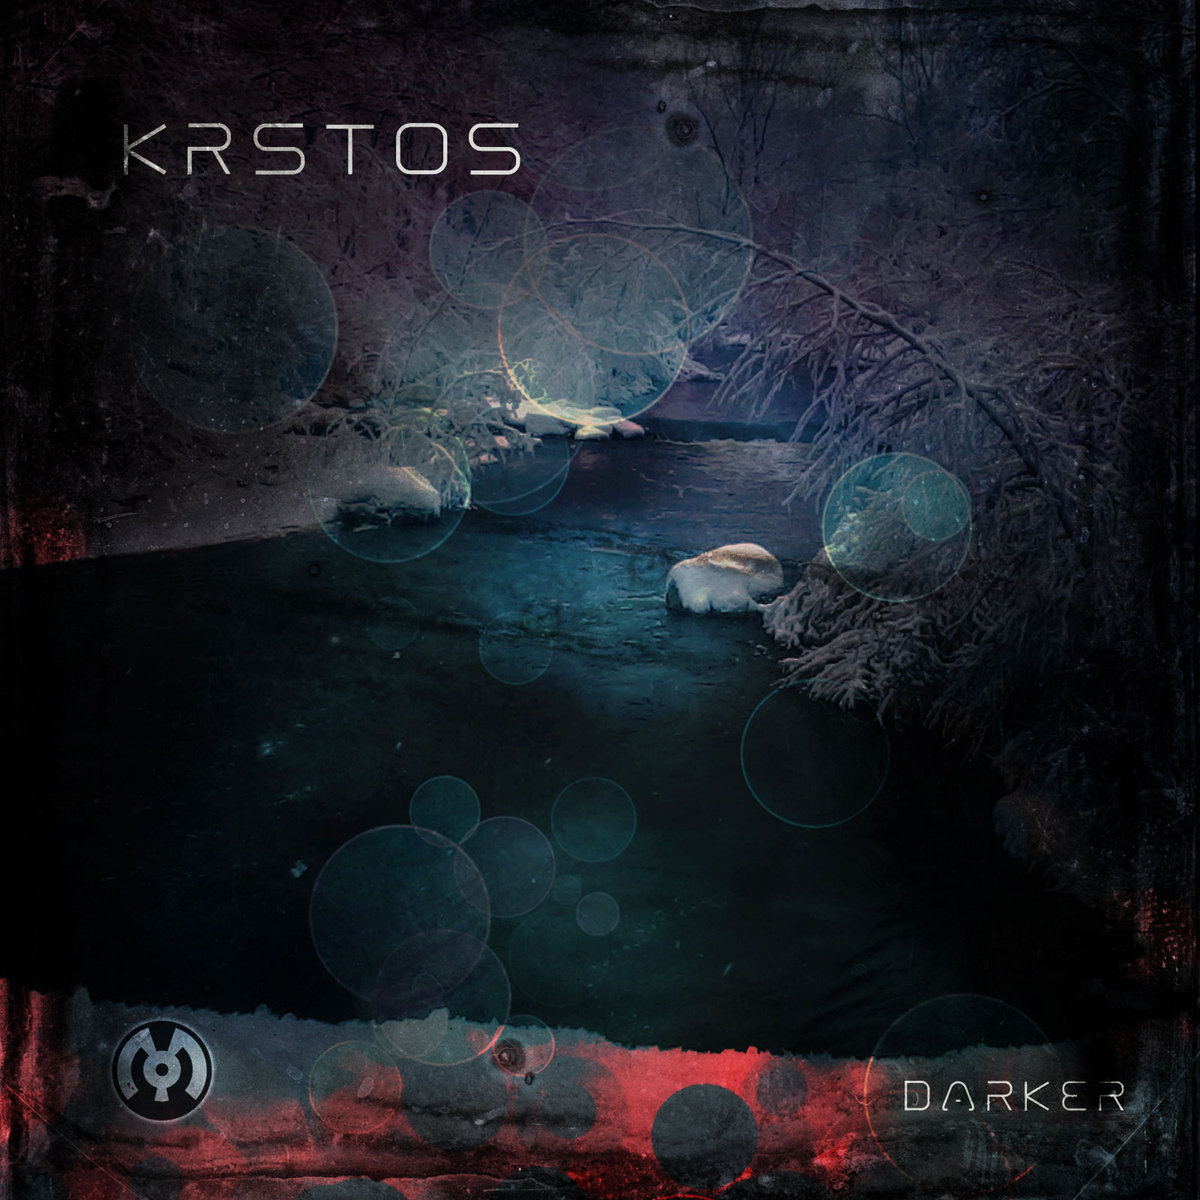 KRSTOS - Darker @ 'Darker' album (electronic, dubstep)